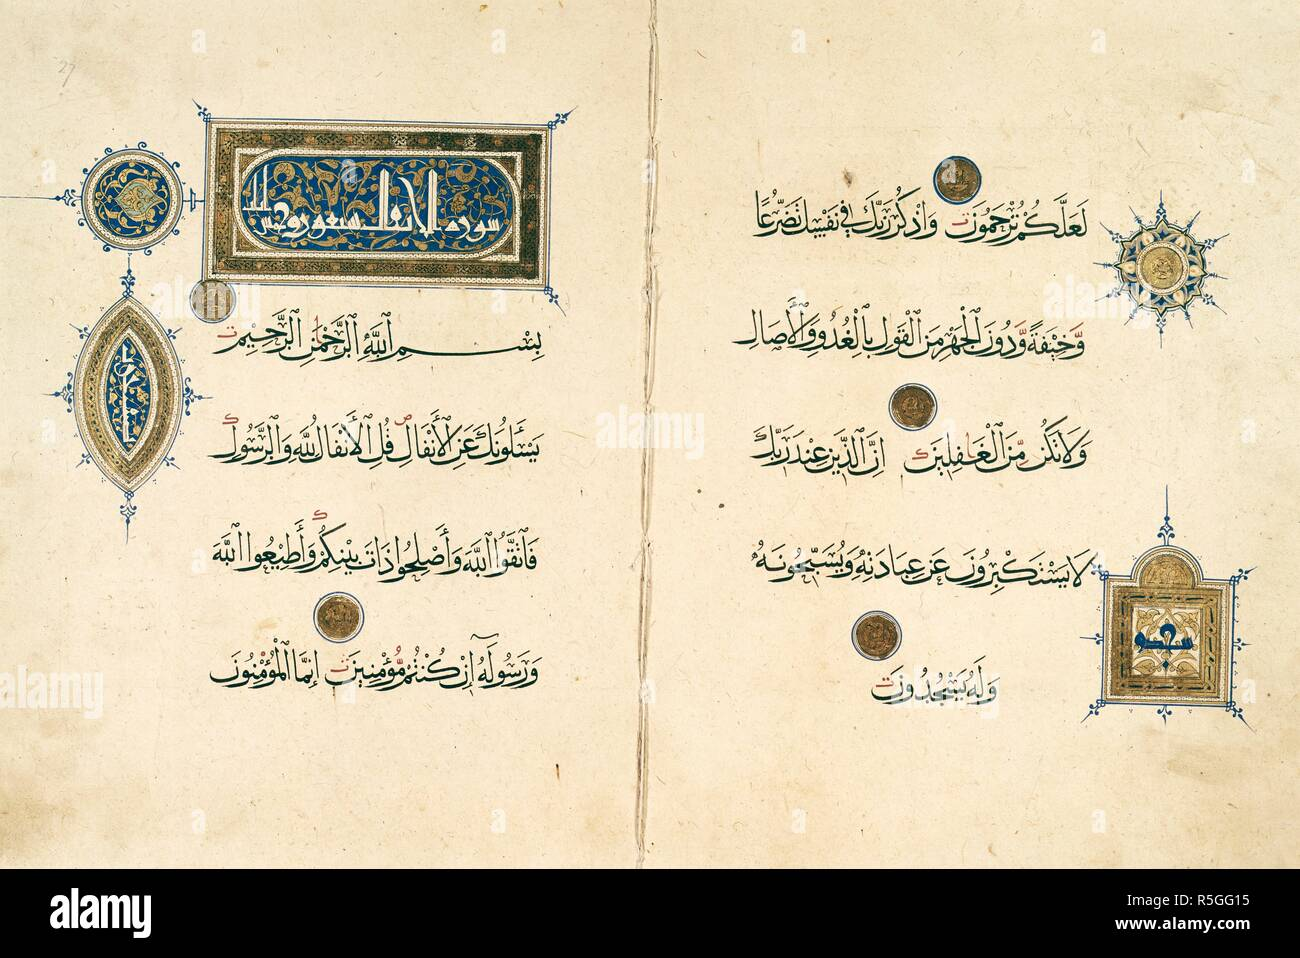 Ornate Qur'an text pages written in rayhani script. Qur'an of Faraj ibn Barquq. Cairo, 14th century. Ornate Qur'an text pages written in rayhani script.  Image taken from The Qur'an of Faraj ibn Barquq.  Originally published/produced in Cairo, 14th century. . Source: Or. 848, ff.26v-27. Language: Arabic. - Stock Image